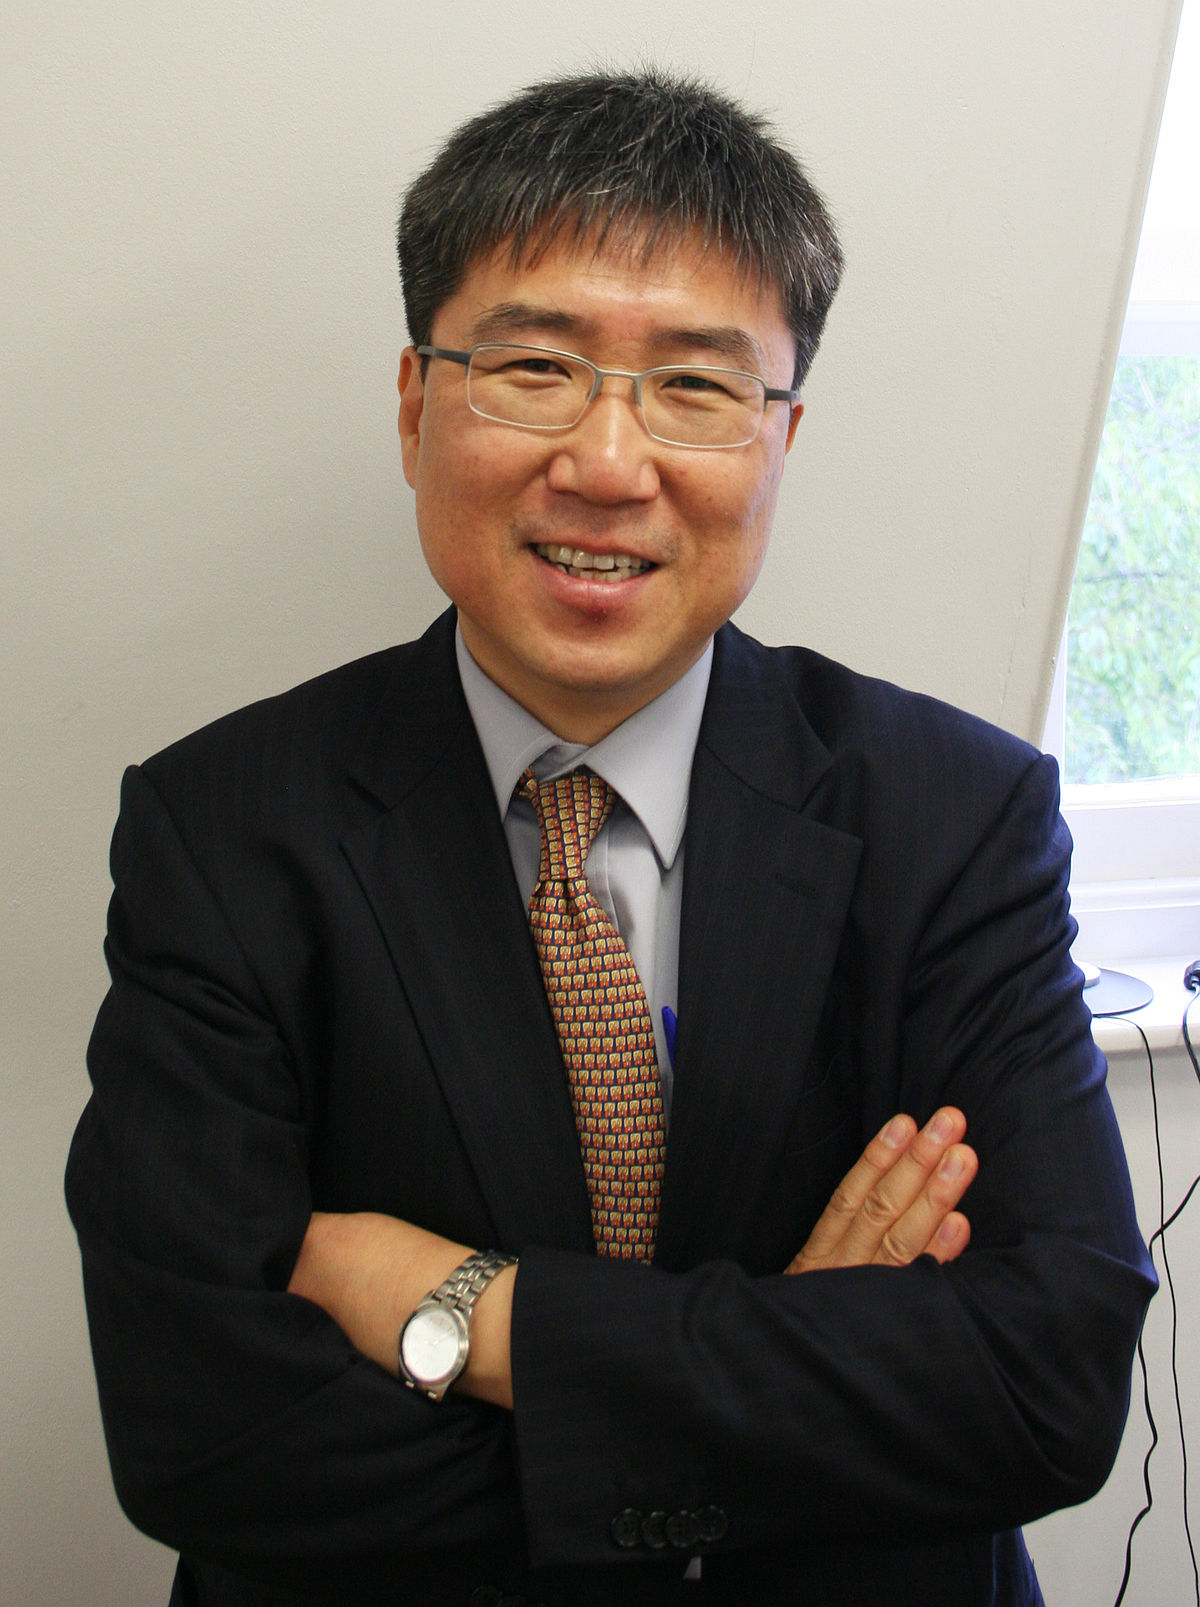 Ha Joon Chang Wikipedia La Enciclopedia Libre